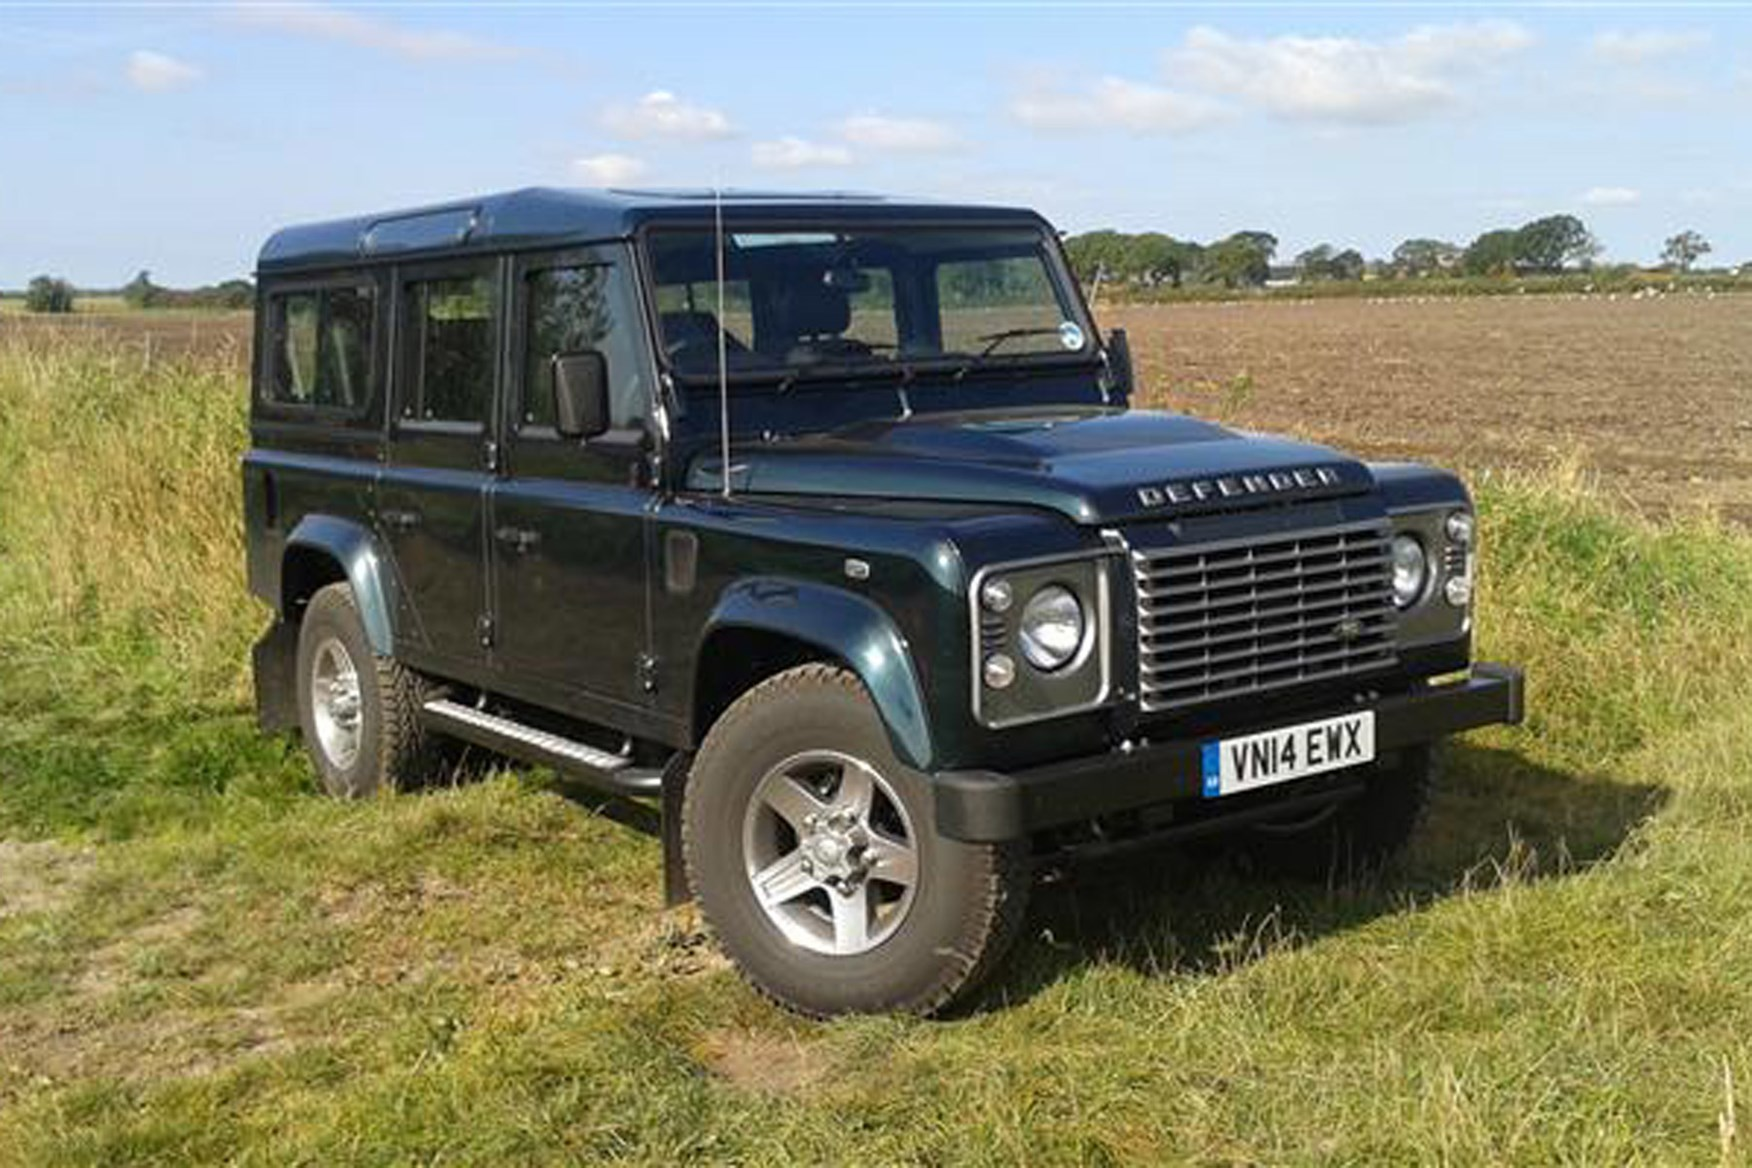 Land Rover Defender review on Parkers Vans - 110 double cab exterior